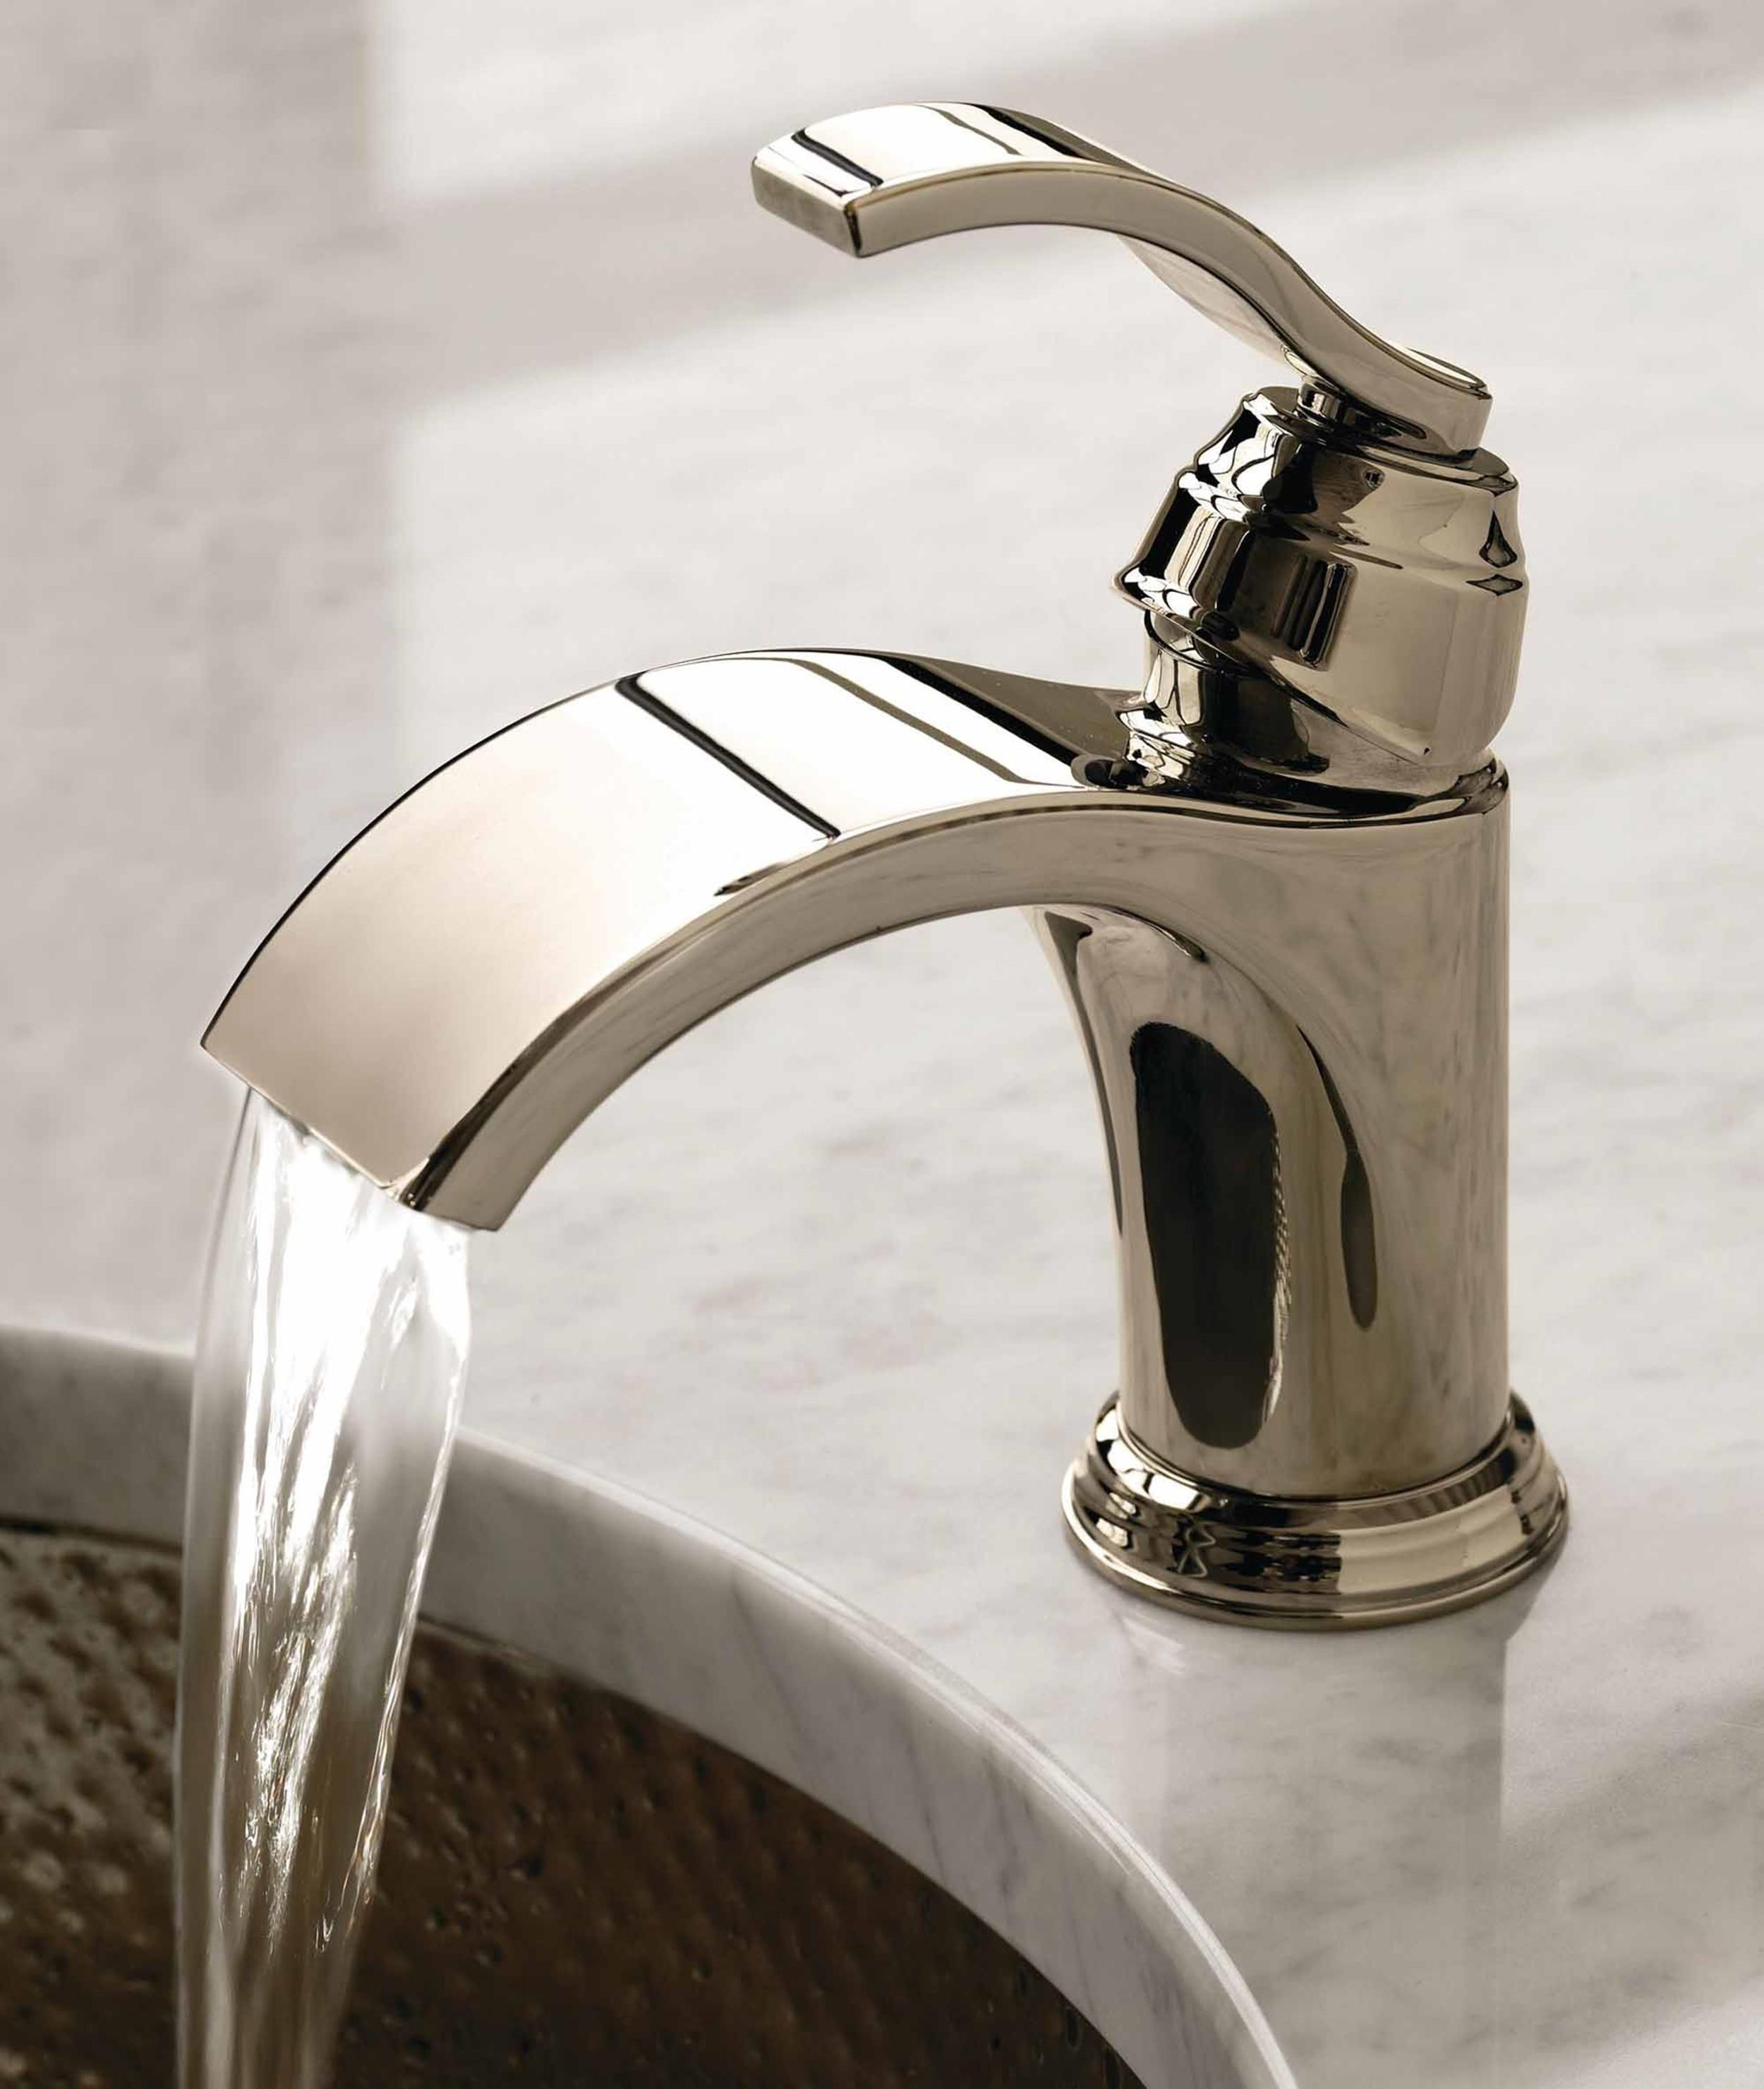 Faucets At Lowes To Make Refreshing Changes To Your Bath And